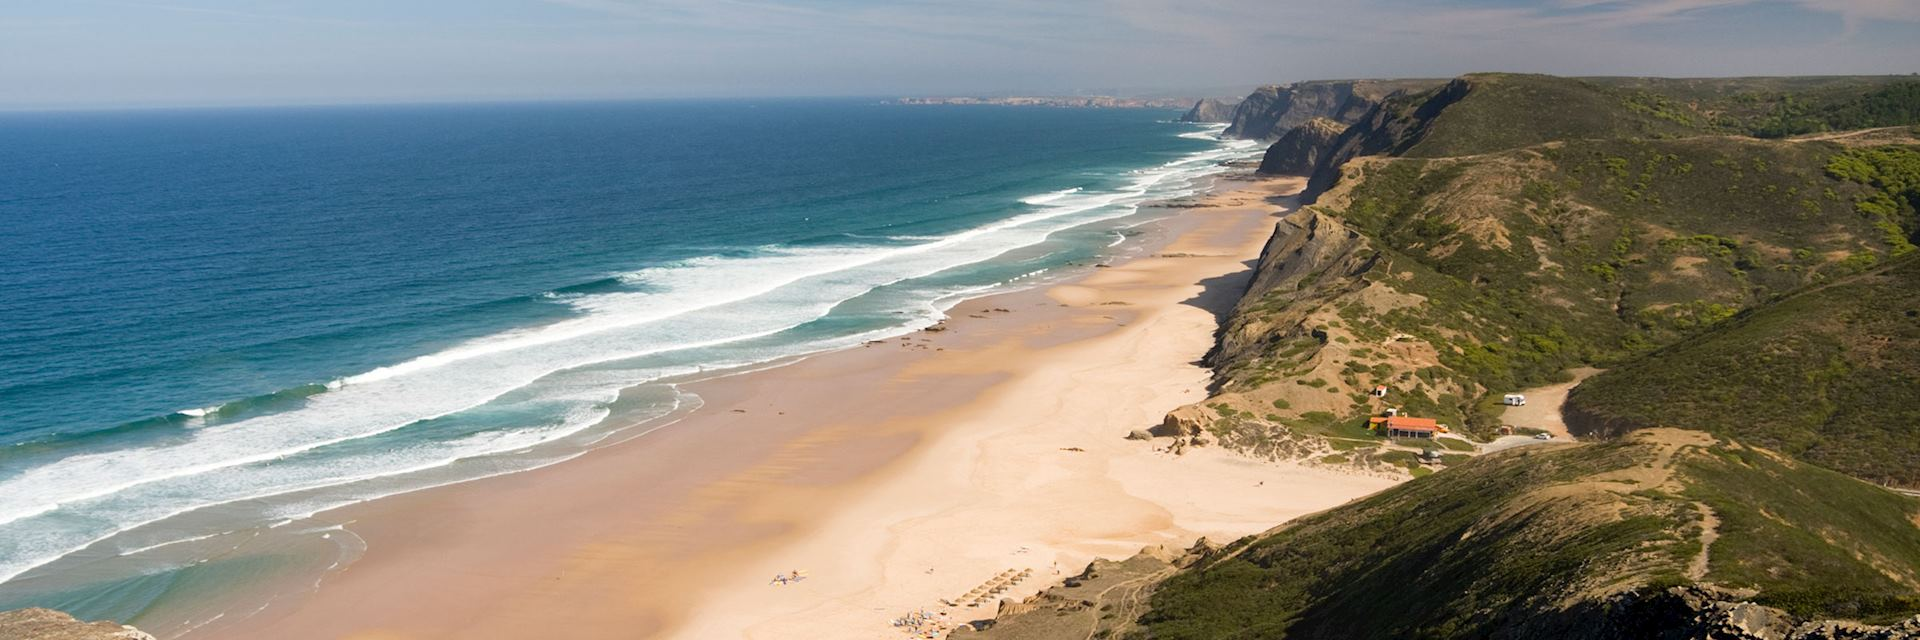 Praia do cordama on Portugal's Algarve coast